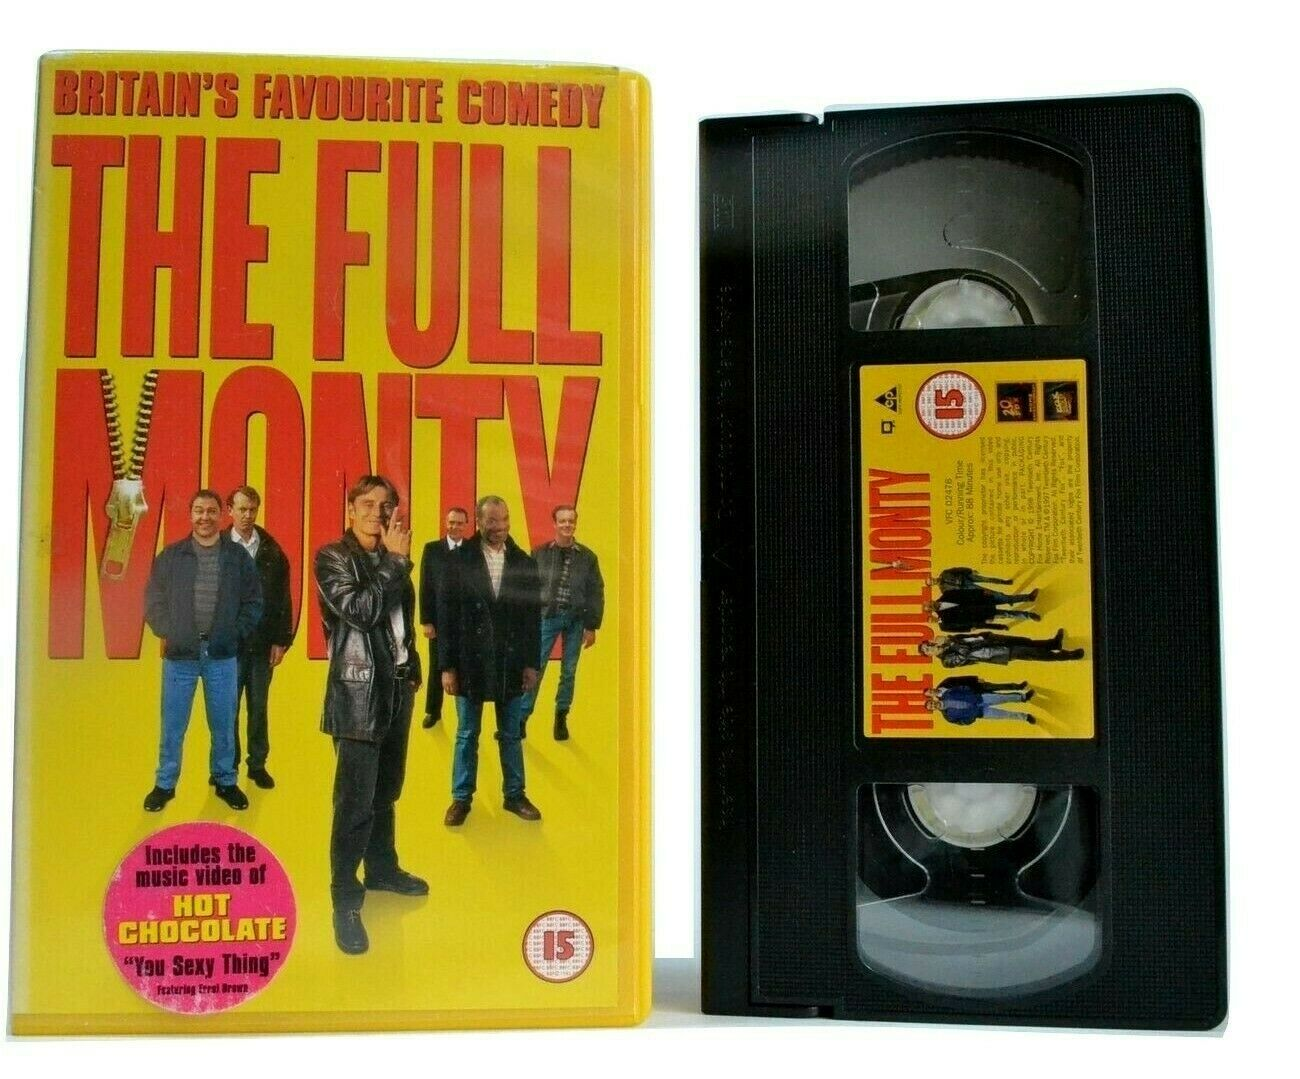 The Full Monty (1997): Britain's Favourite Comedy - Male Striptease Act - VHS